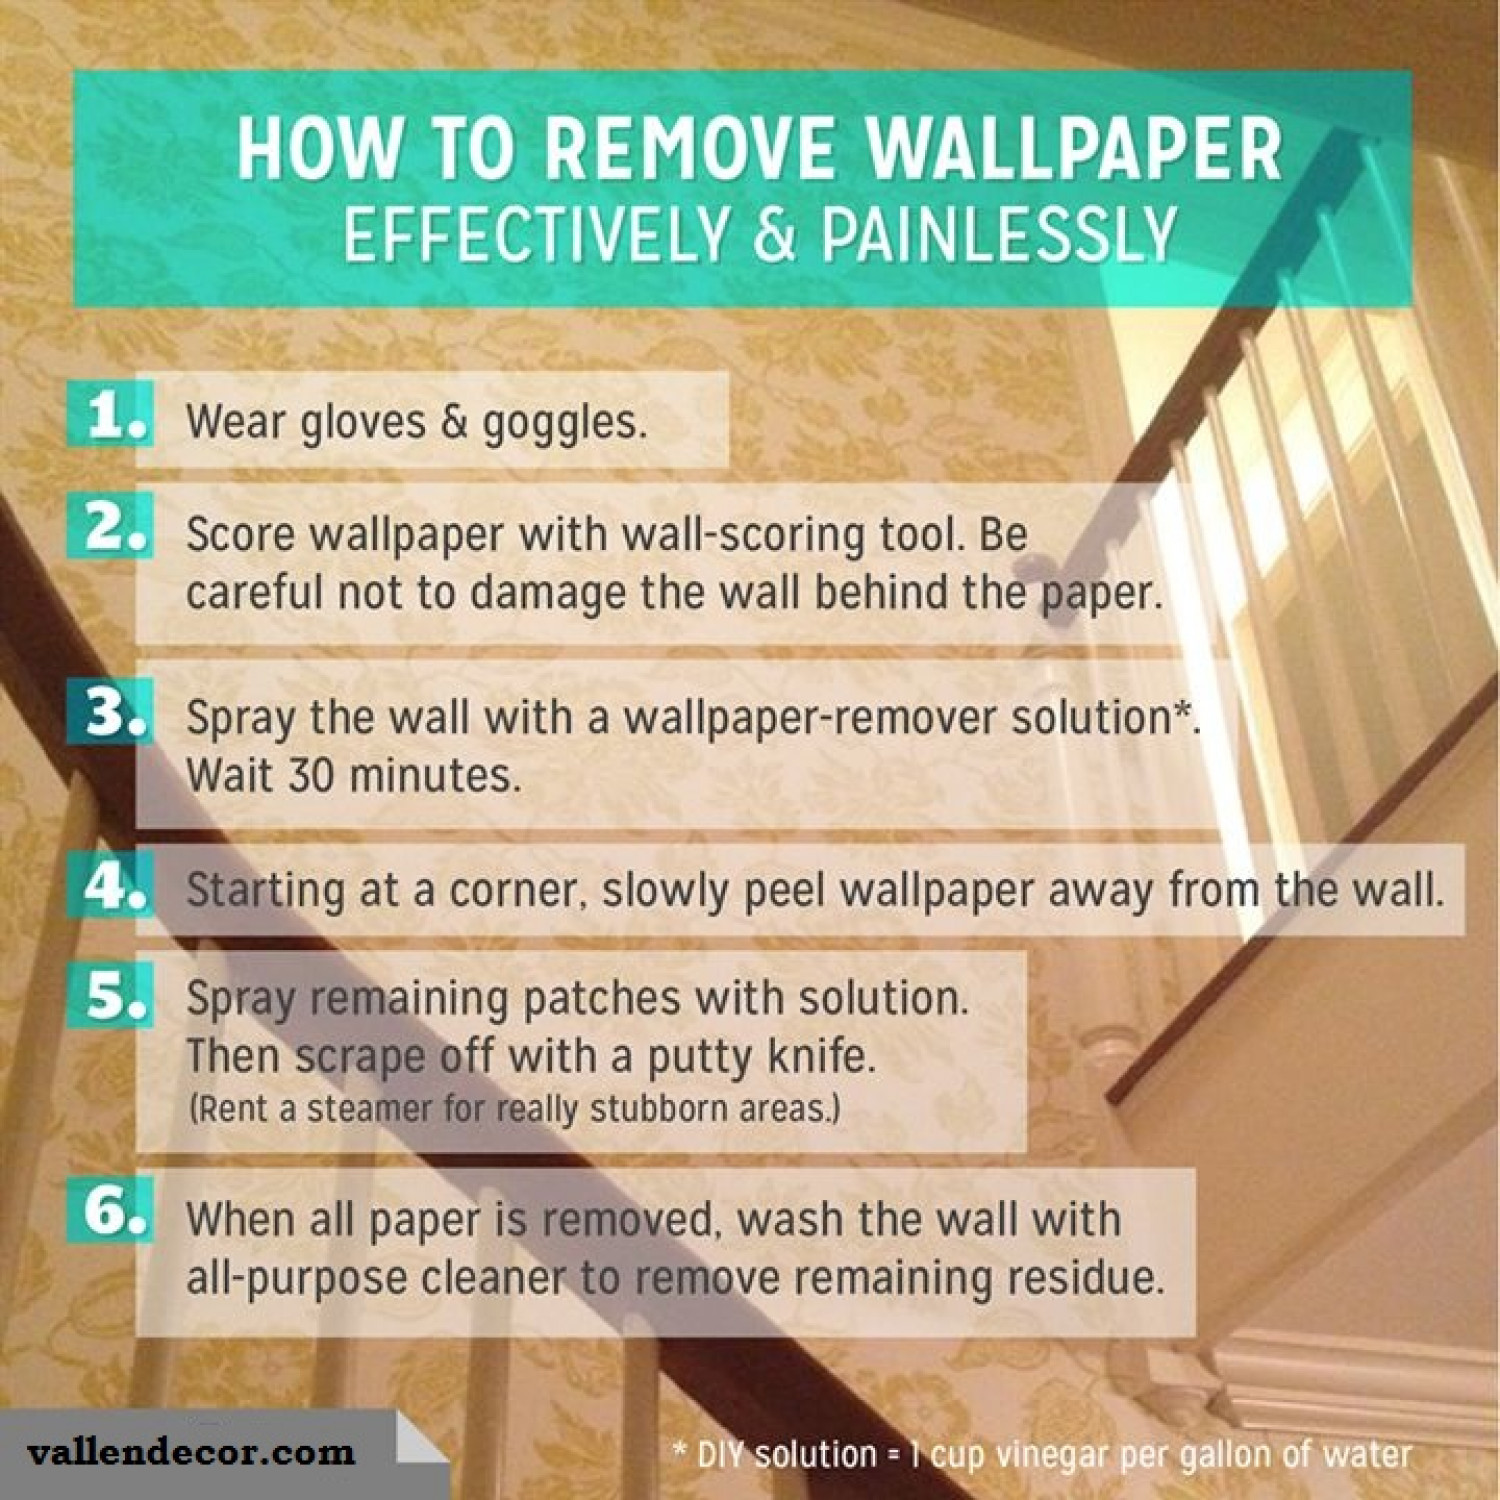 How To Remove The Wallpaper Effectively And Painlessly Infographic